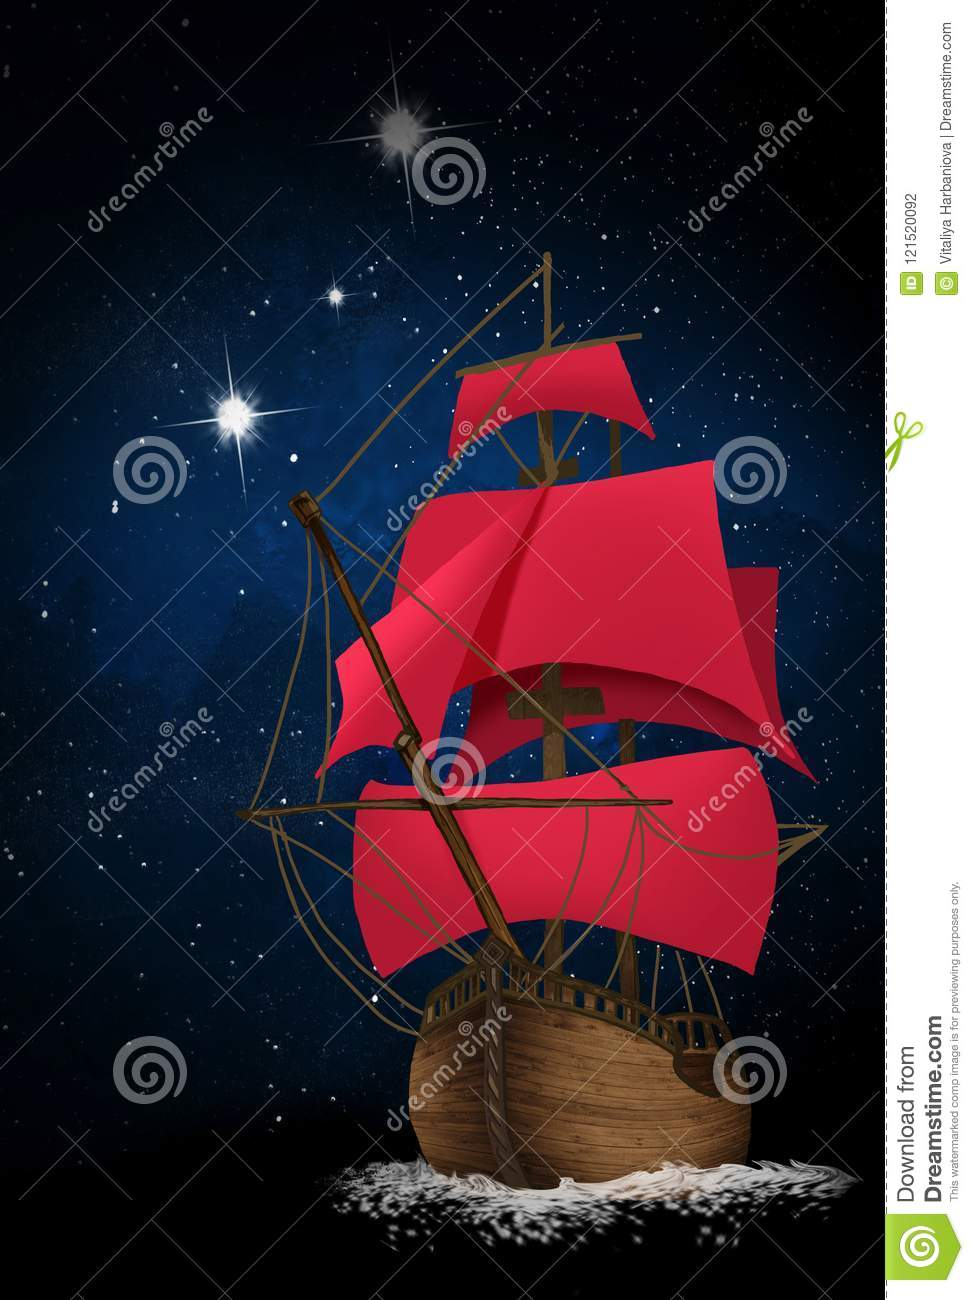 A Ship With Scarlet Sails Against The Background Of Dark Night Sky Stars